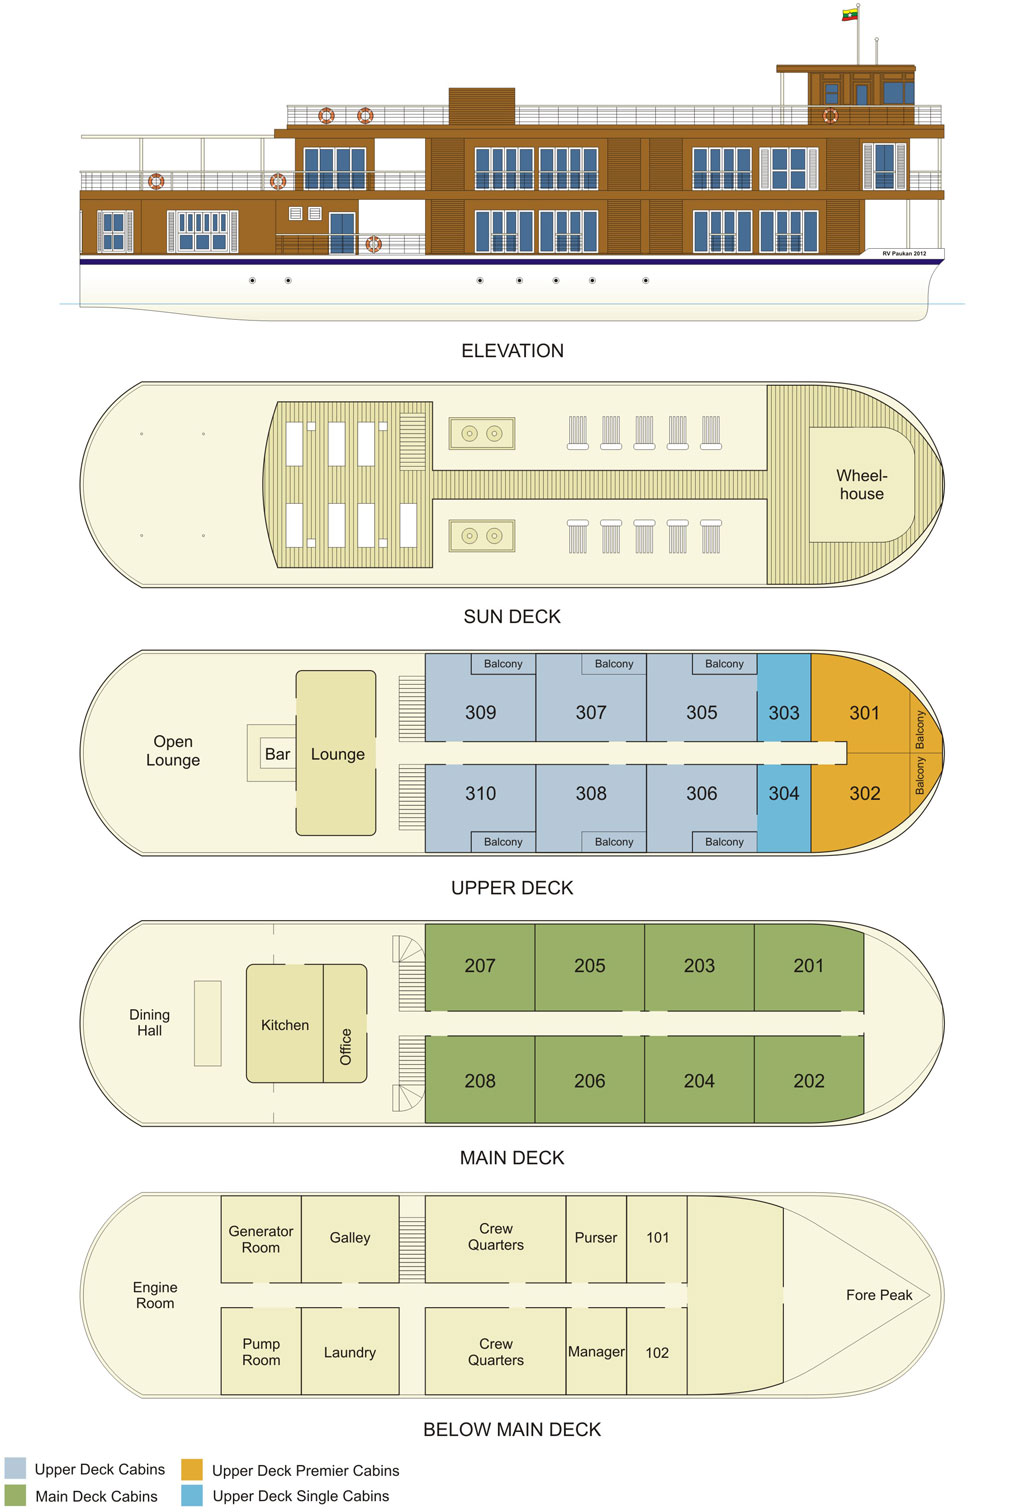 Cabin layout for Paukan 2012